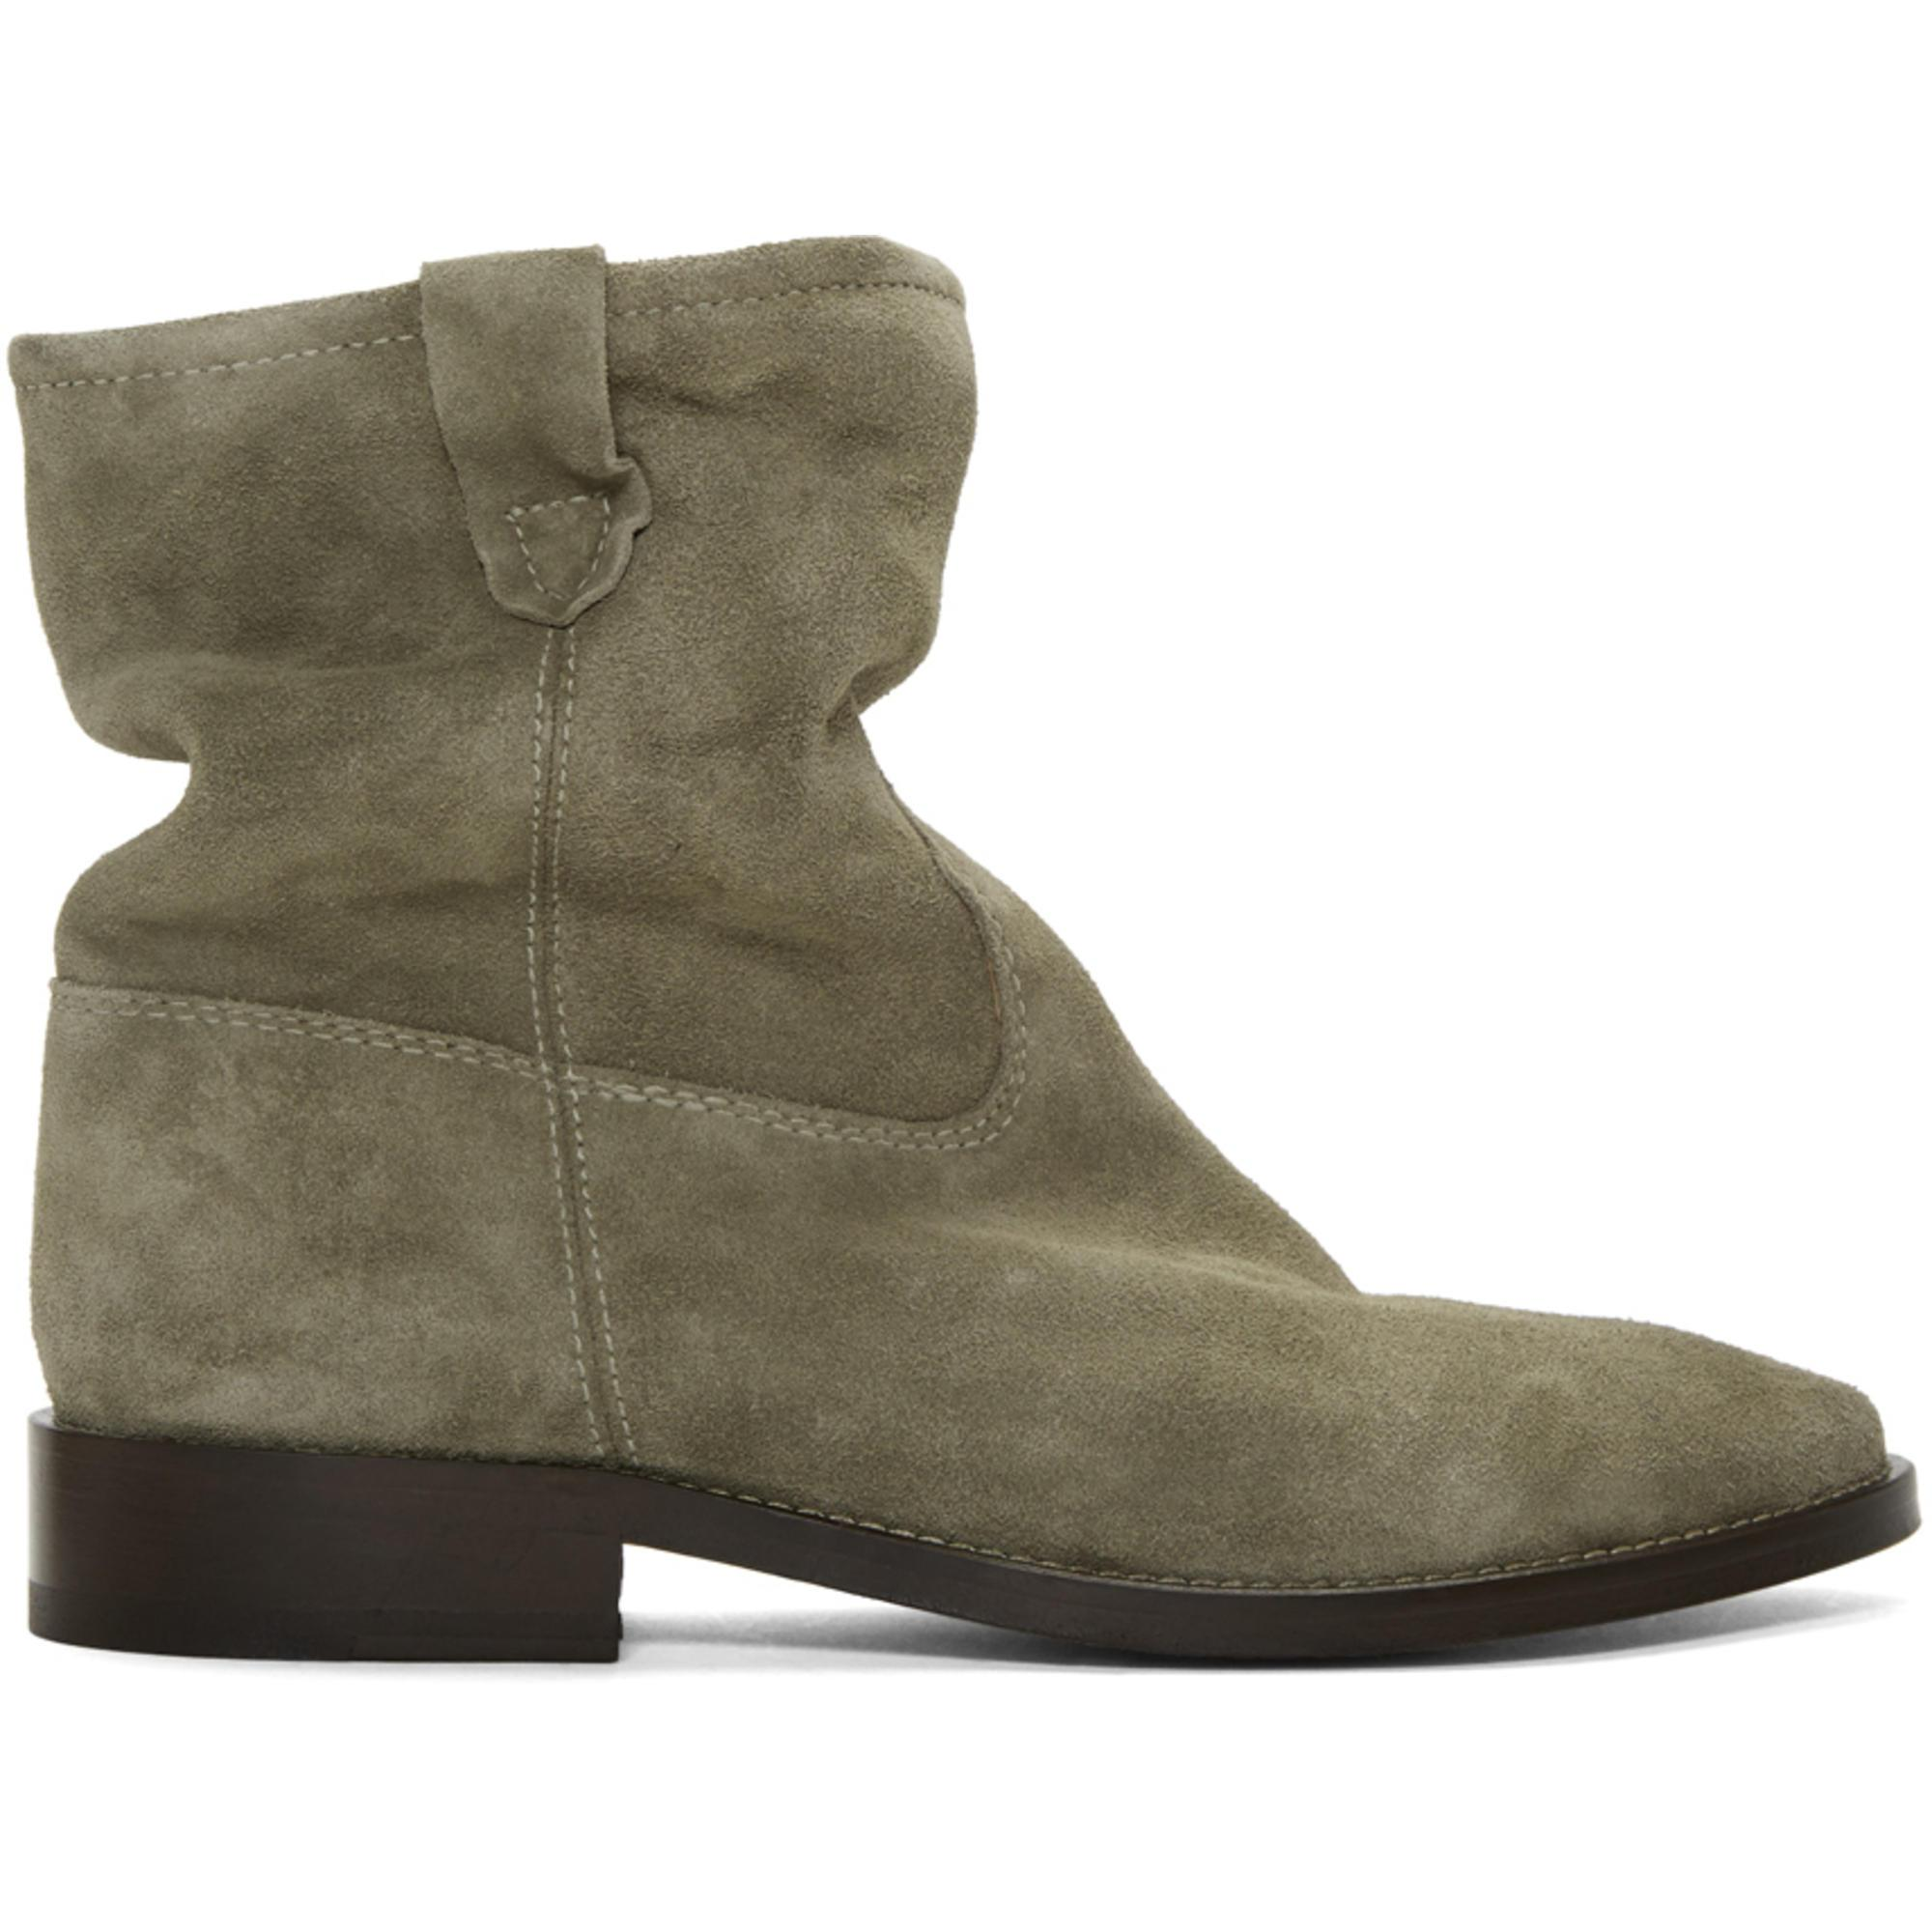 88c4ec4839a1 Isabel Marant Brown Cryston Velvet Boots in Brown - Lyst